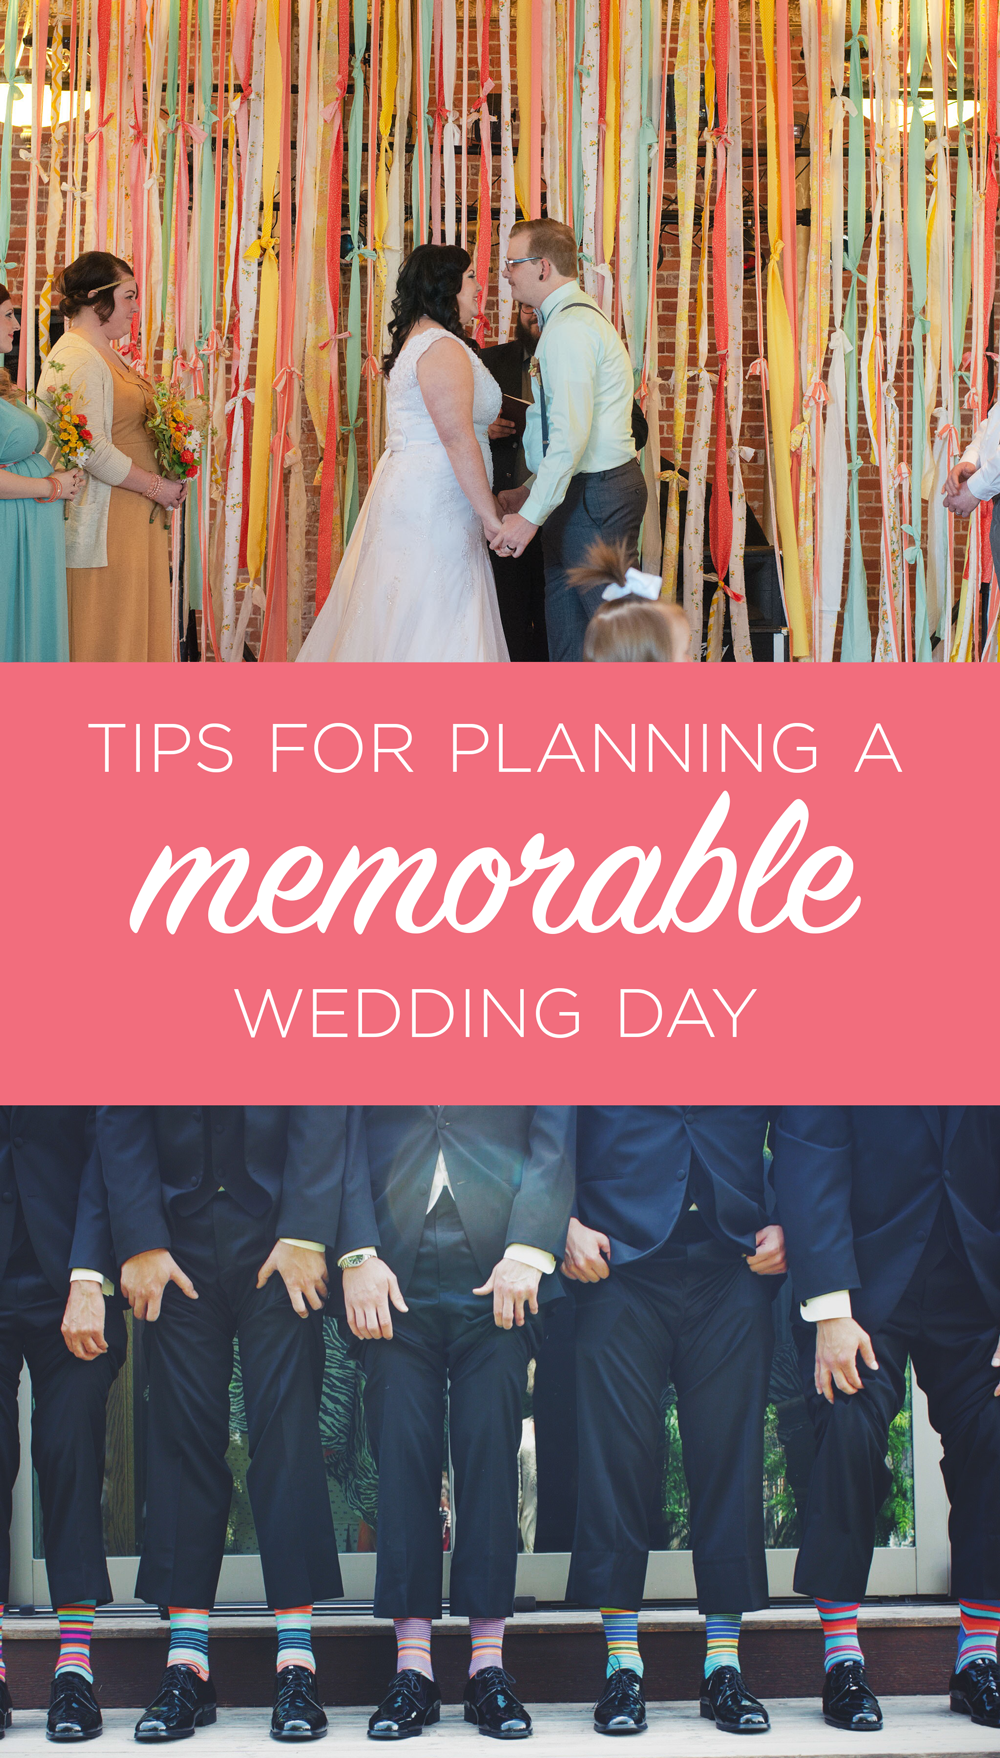 Tips for planning a memorable wedding